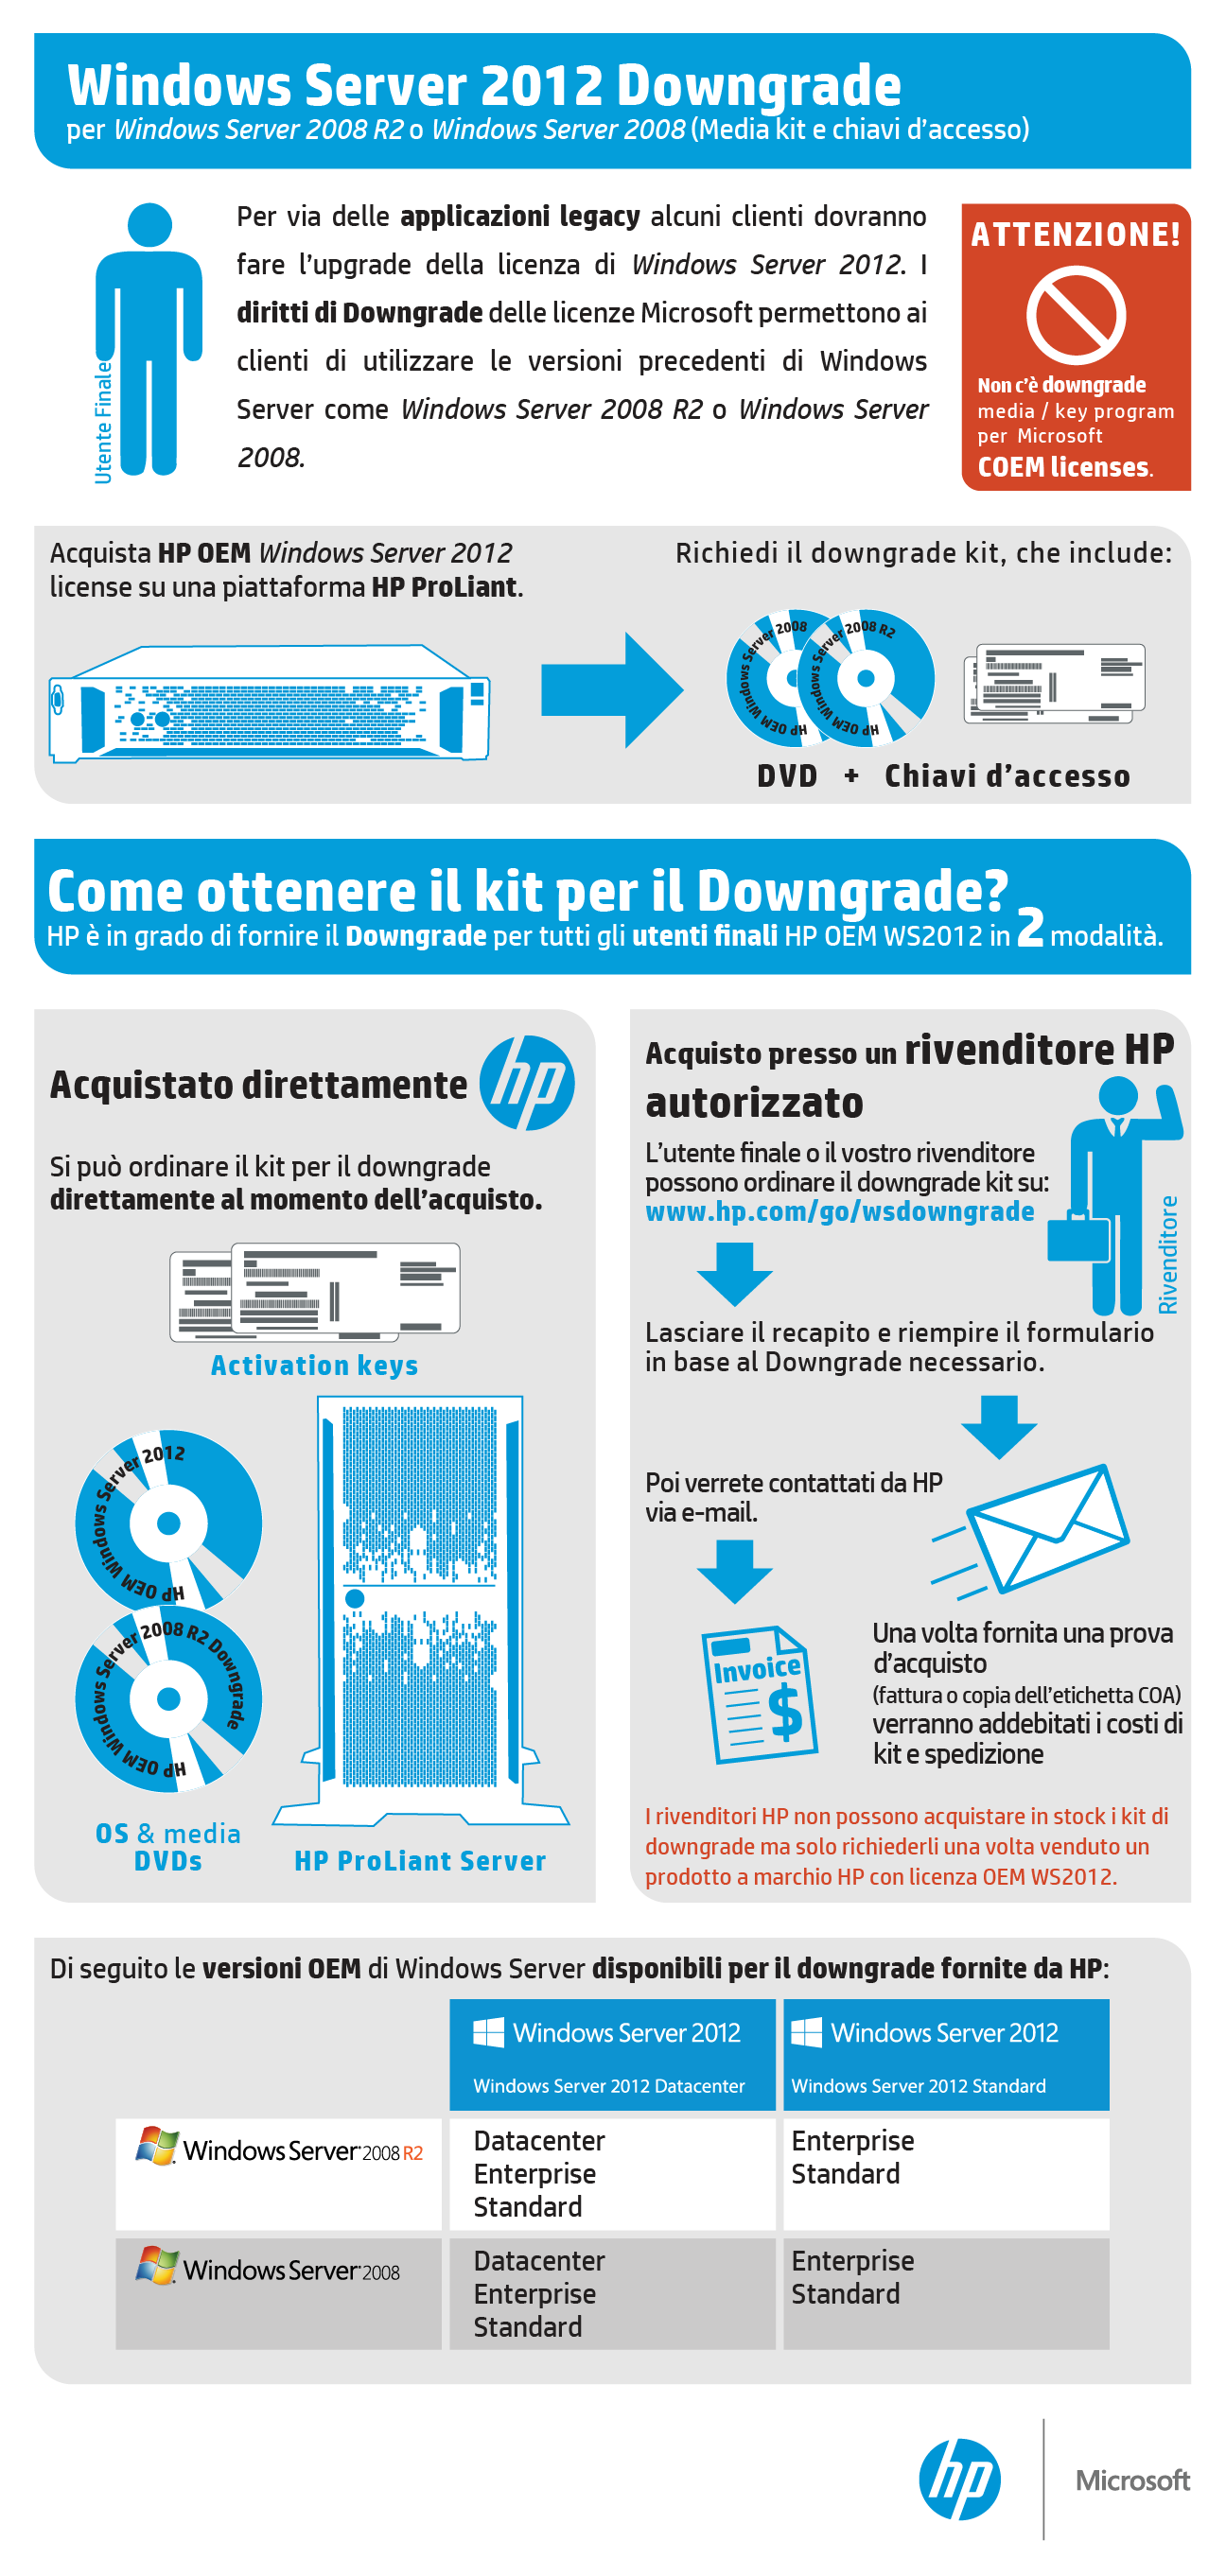 DG_INFOGRAPHIC_IT_EDITABLE[1].png